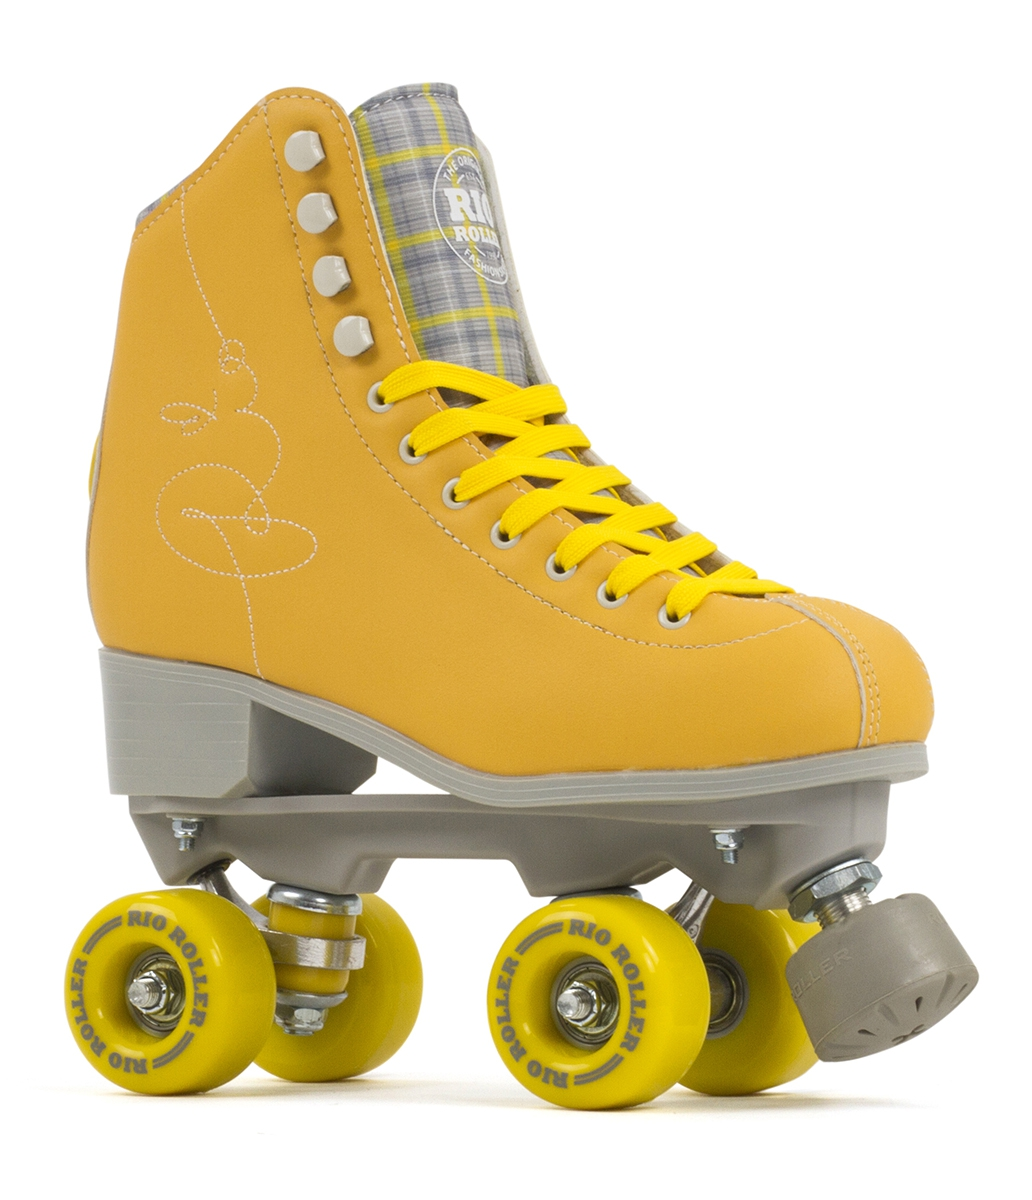 Rio Roller Signature Yellow - 40,5